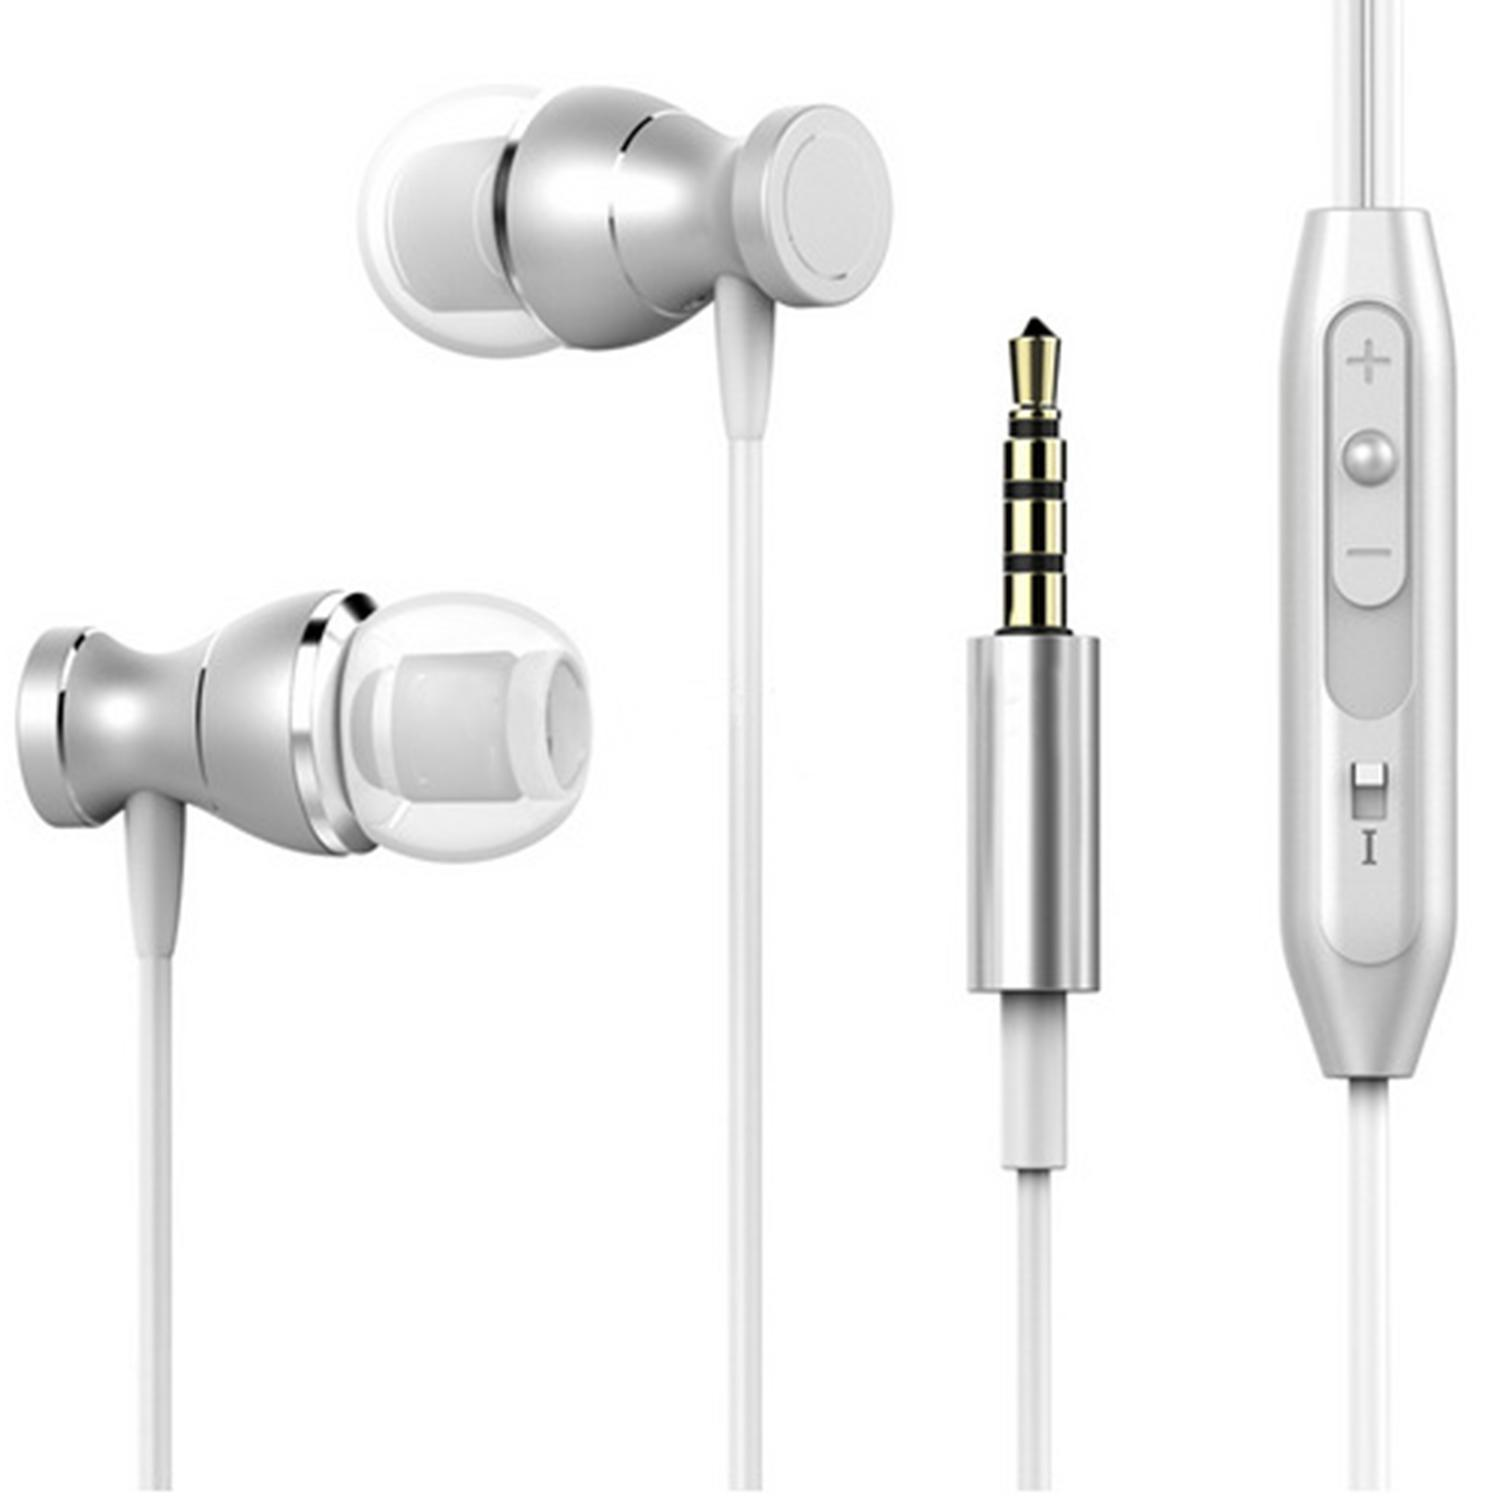 Noise Isolating in Ear Headphones Earphones with Pure Sound and Powerful B ass for iPhone, iPad, iPod, Sam sung Smartphones and Tablets Elec